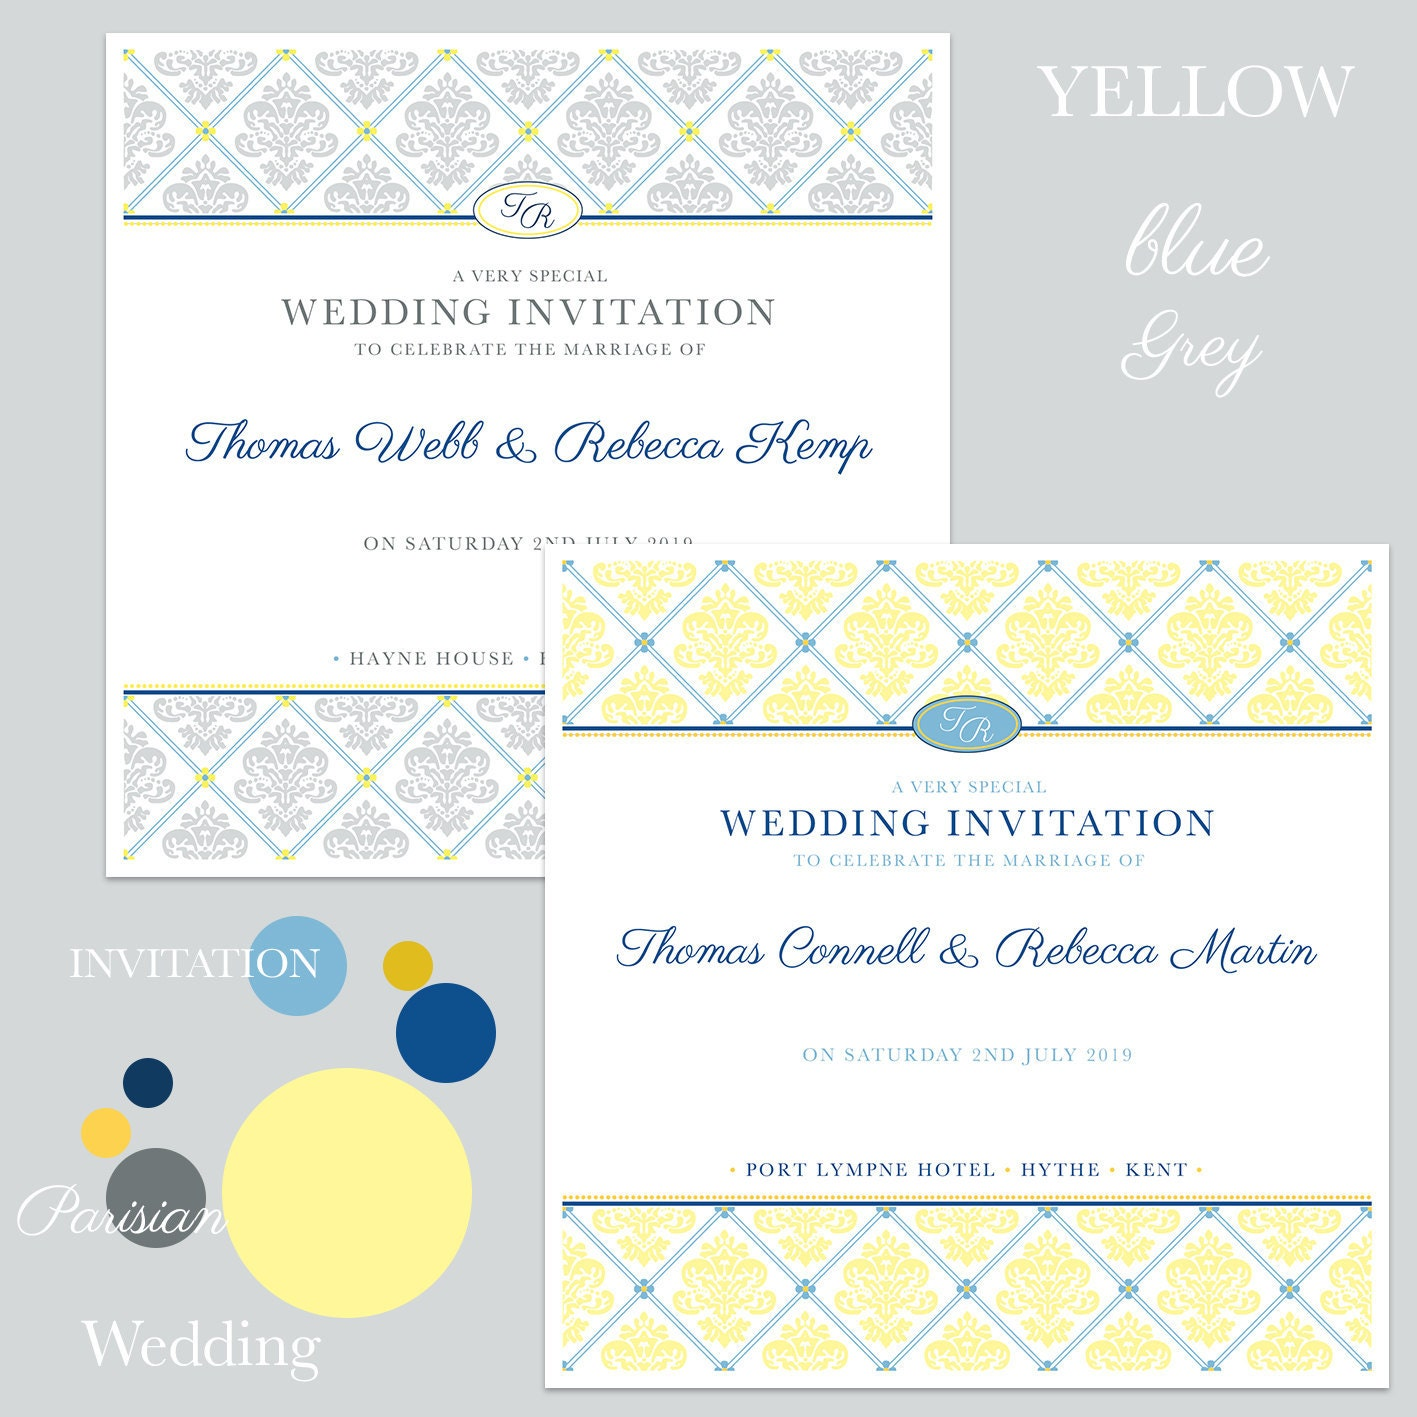 Yellow, blue and grey wedding invitations